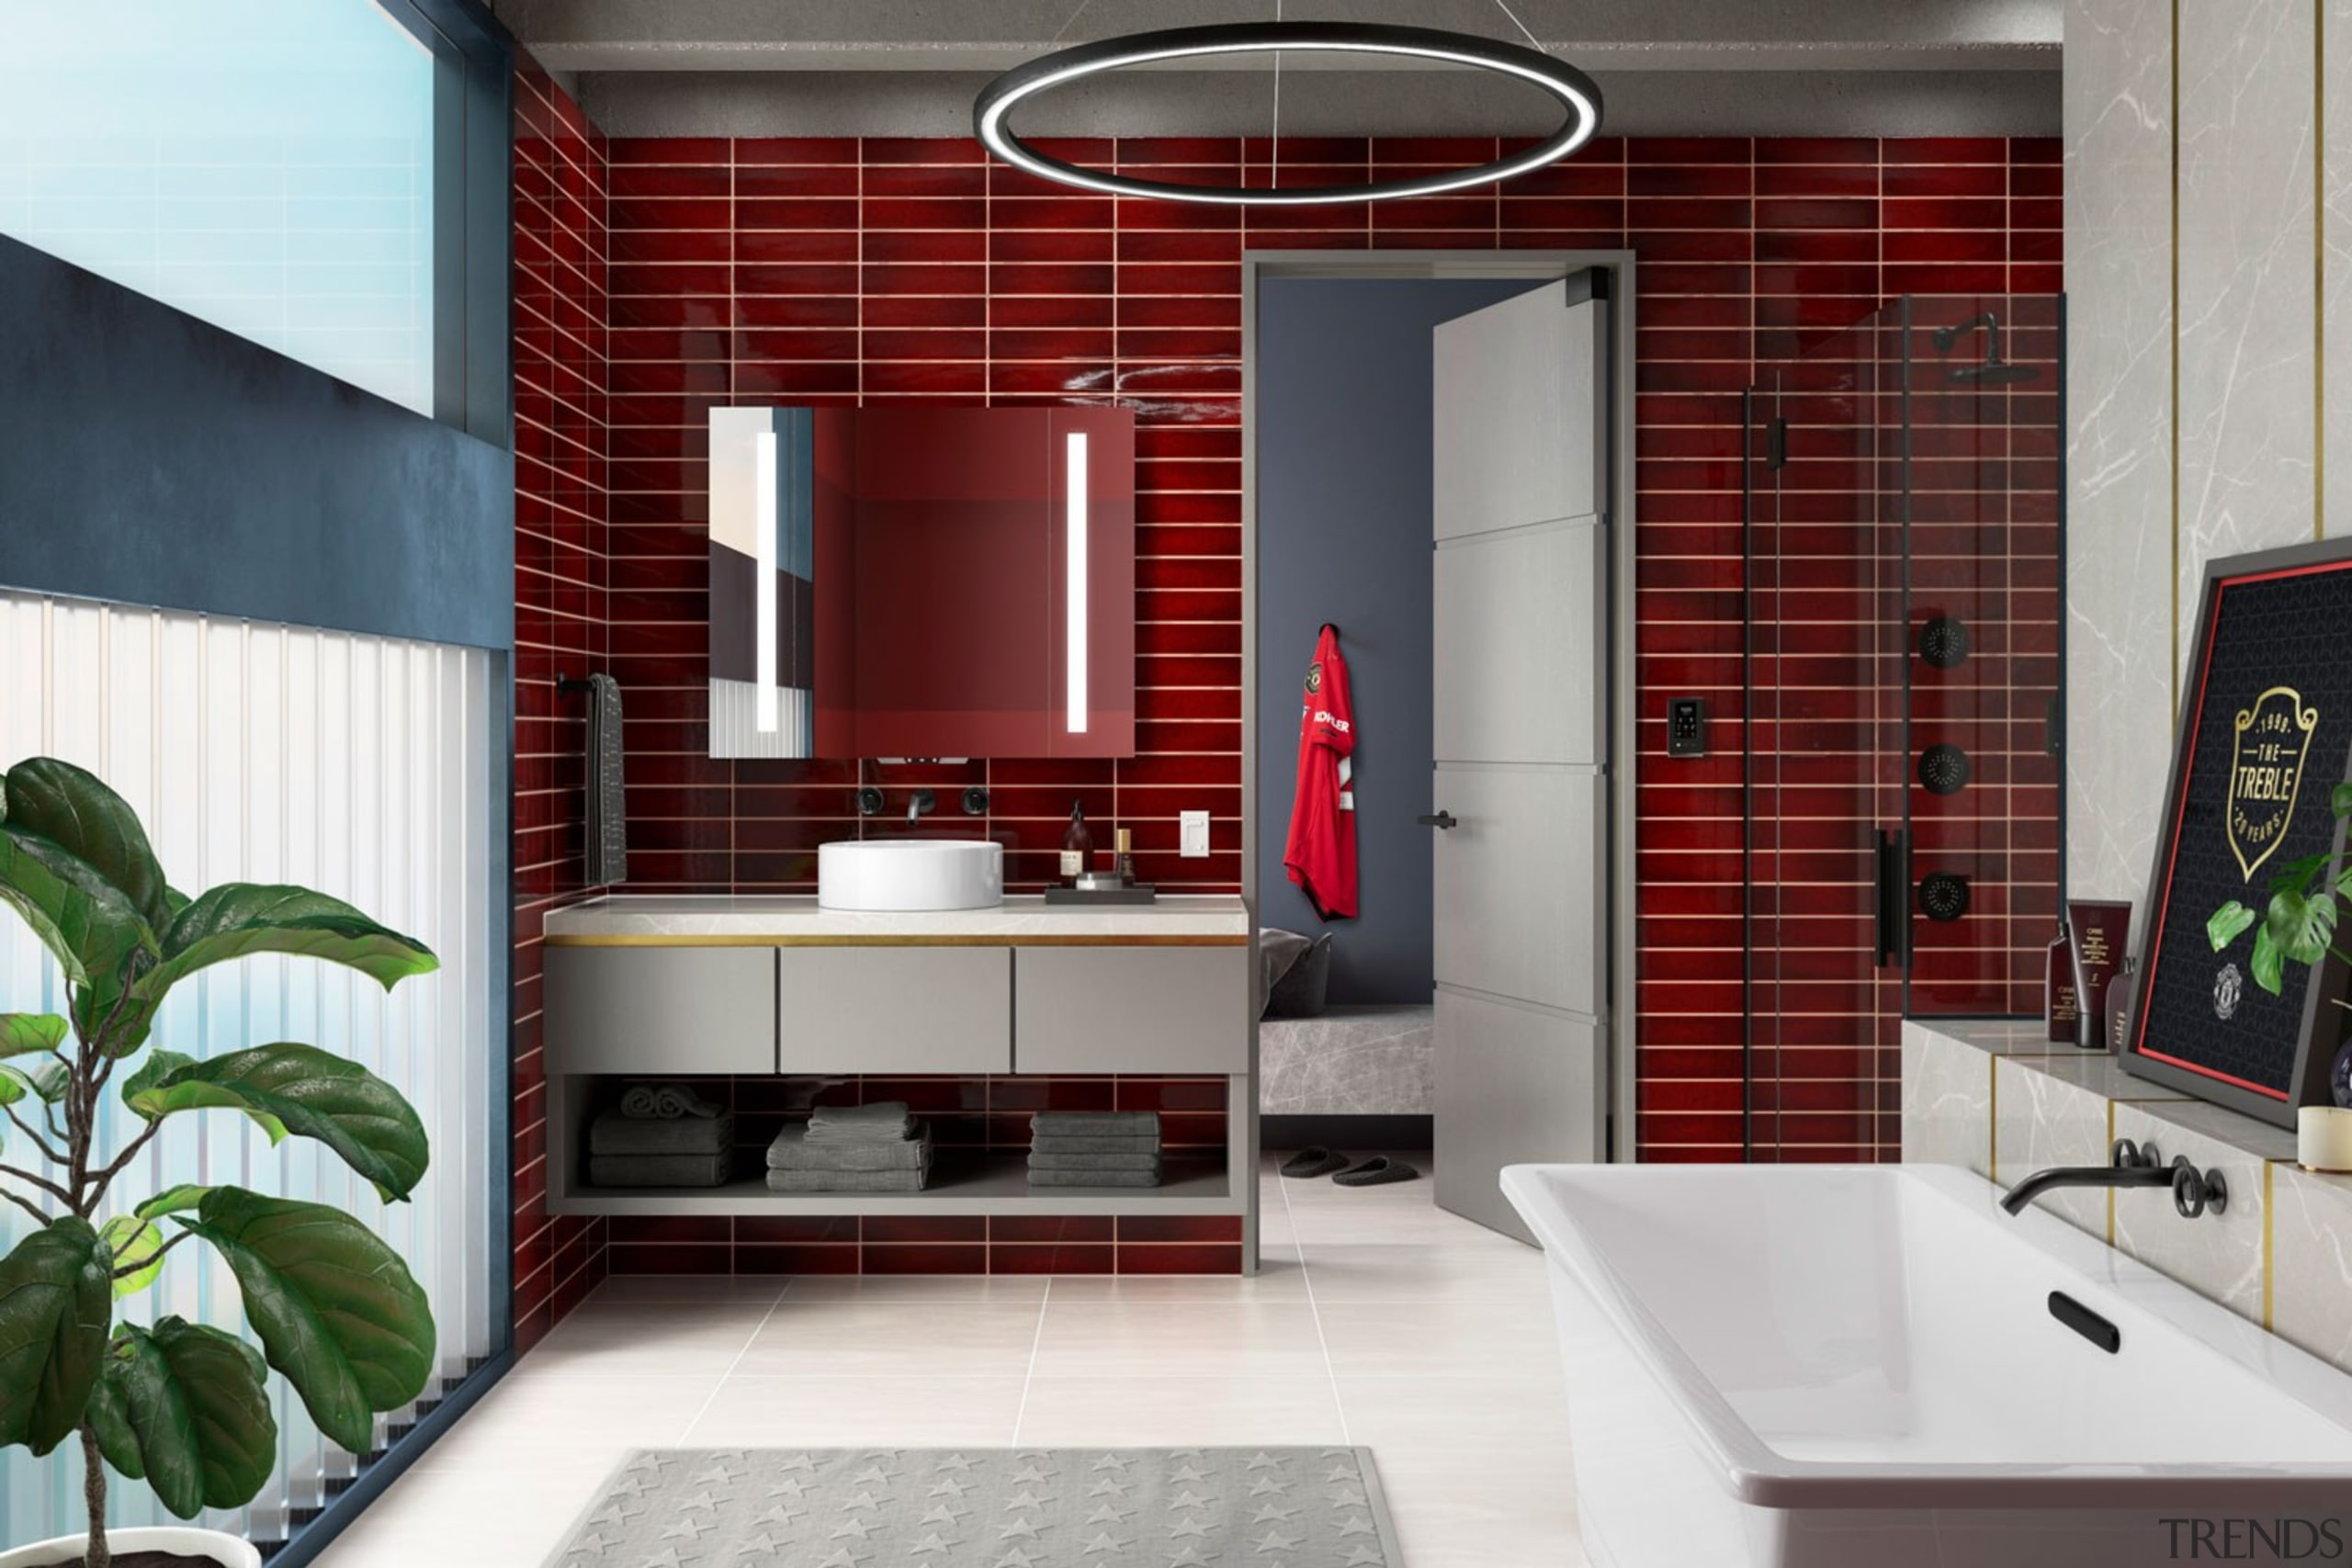 The Kohler design team sought to embrace Manchester architecture, bathroom, building, cabinetry, ceiling, floor, flooring, furniture, home, house, interior design, living room, property, real estate, red, room, sink, tile, white, red